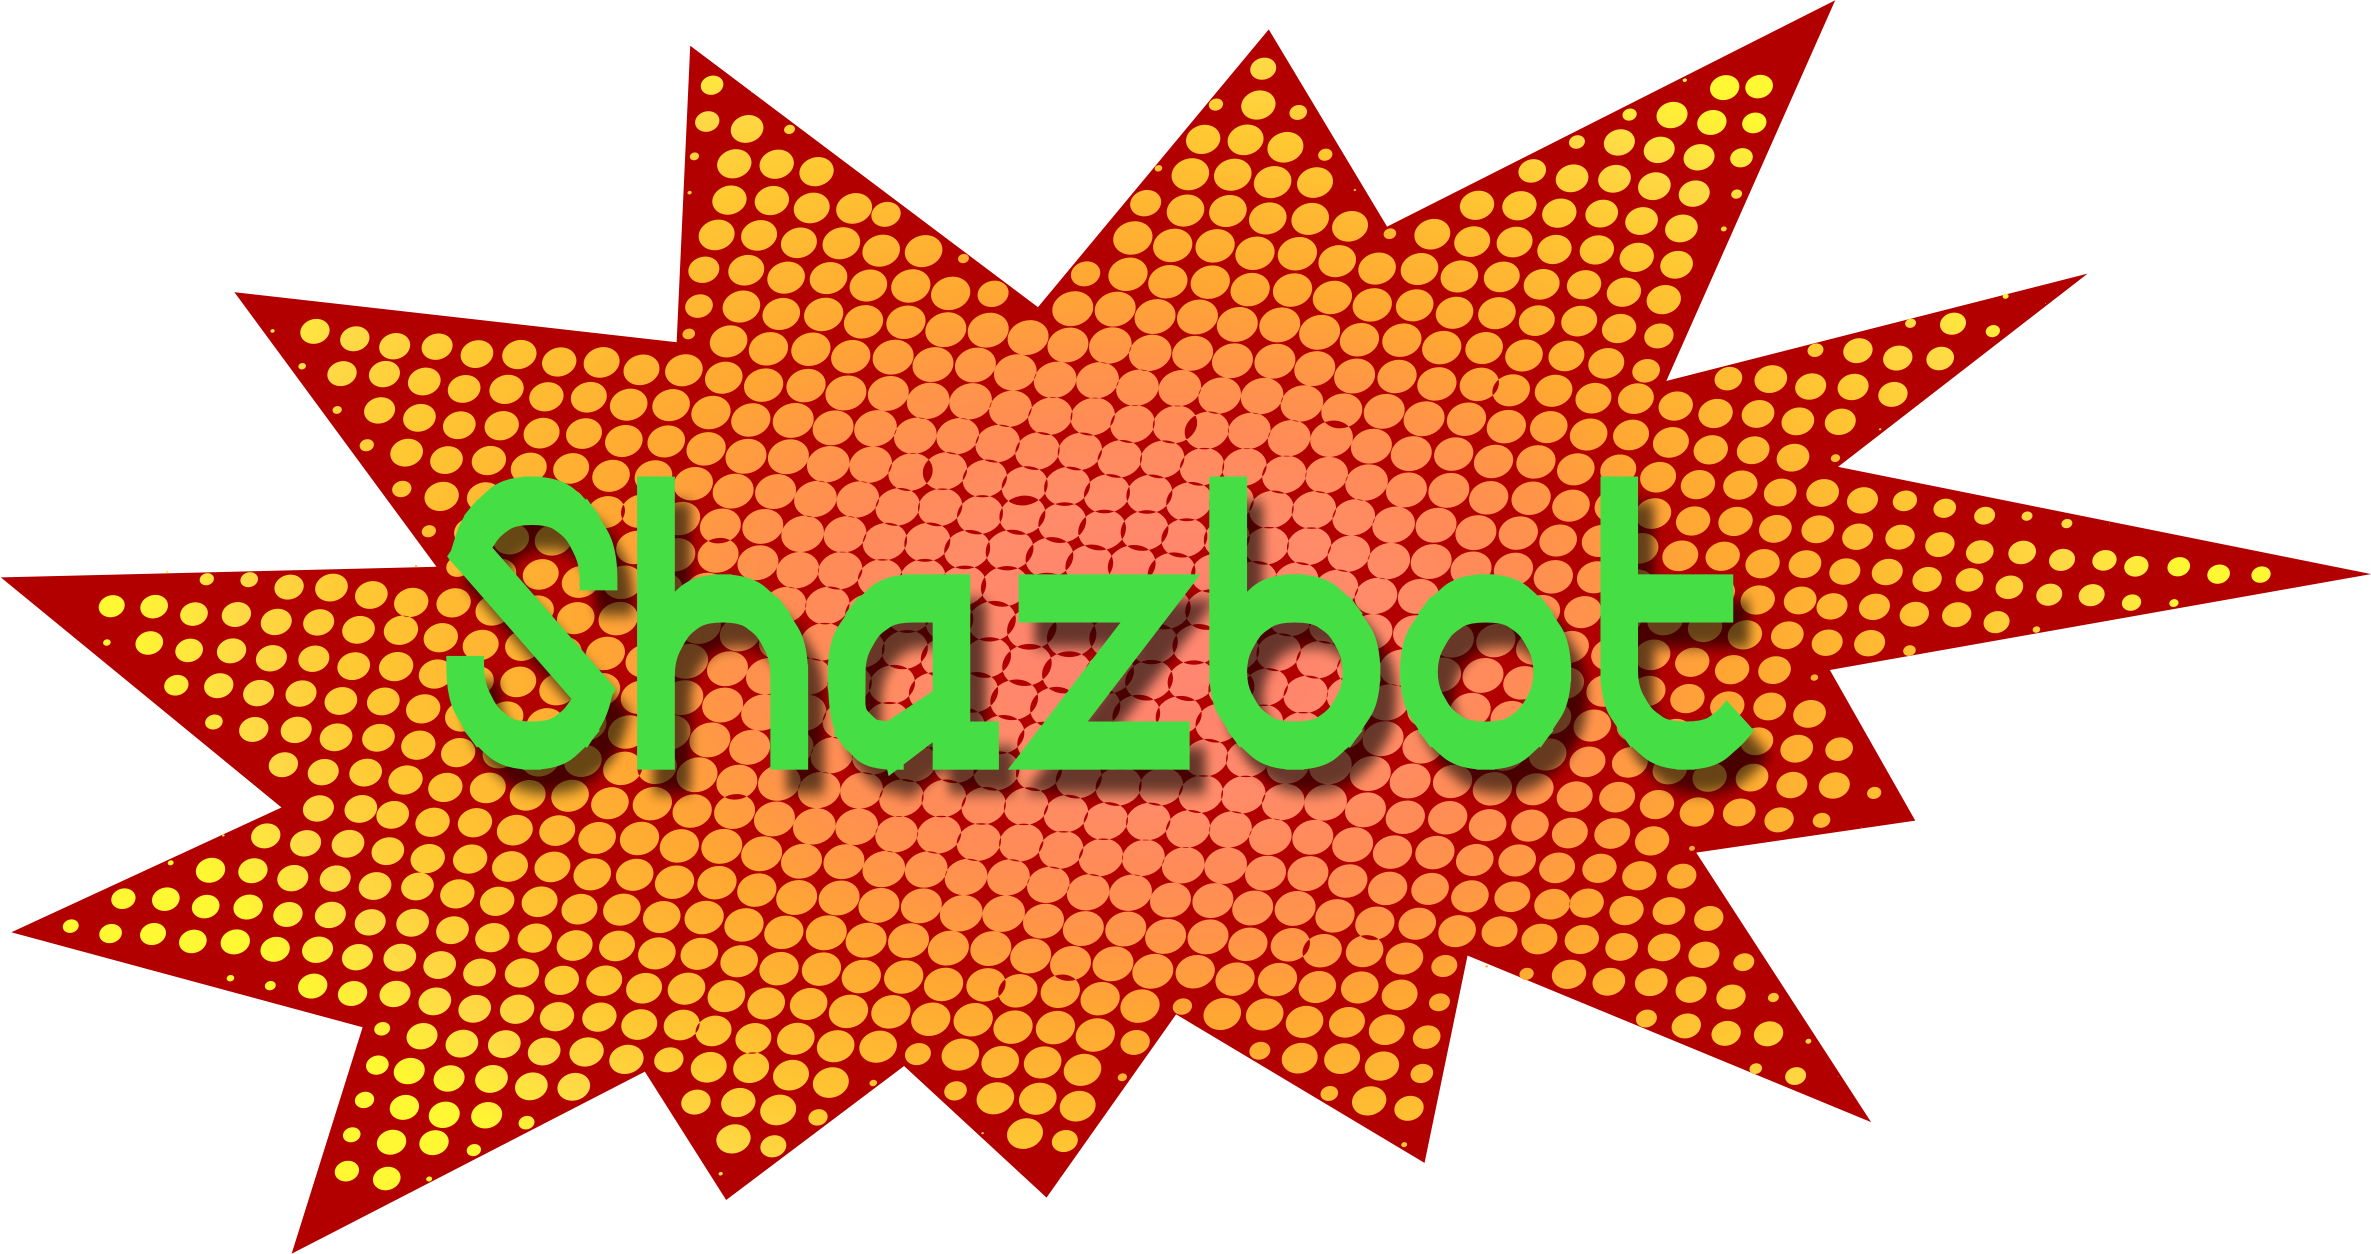 Shazbot by Arvin61r58